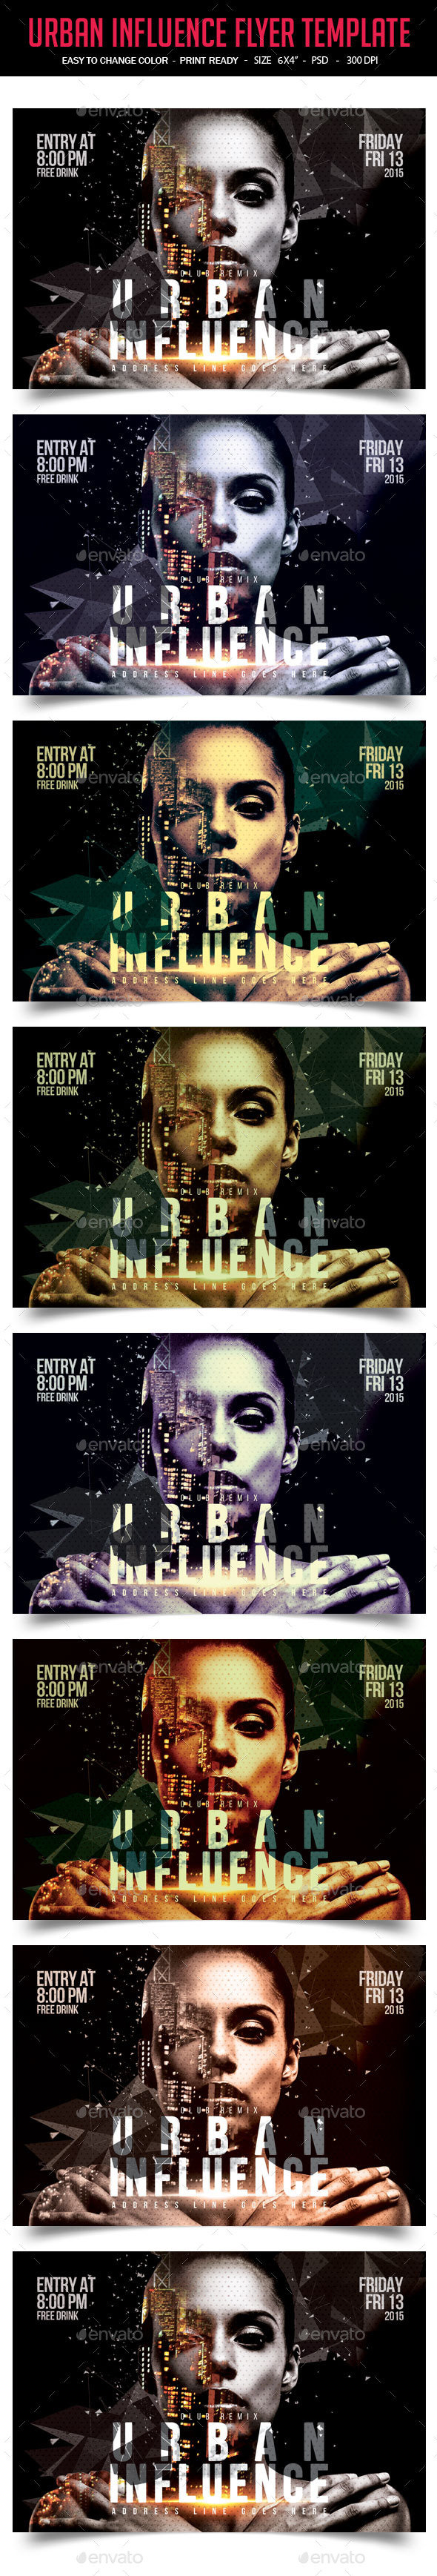 GraphicRiver Urban Influence Party Flyer Template 10287643